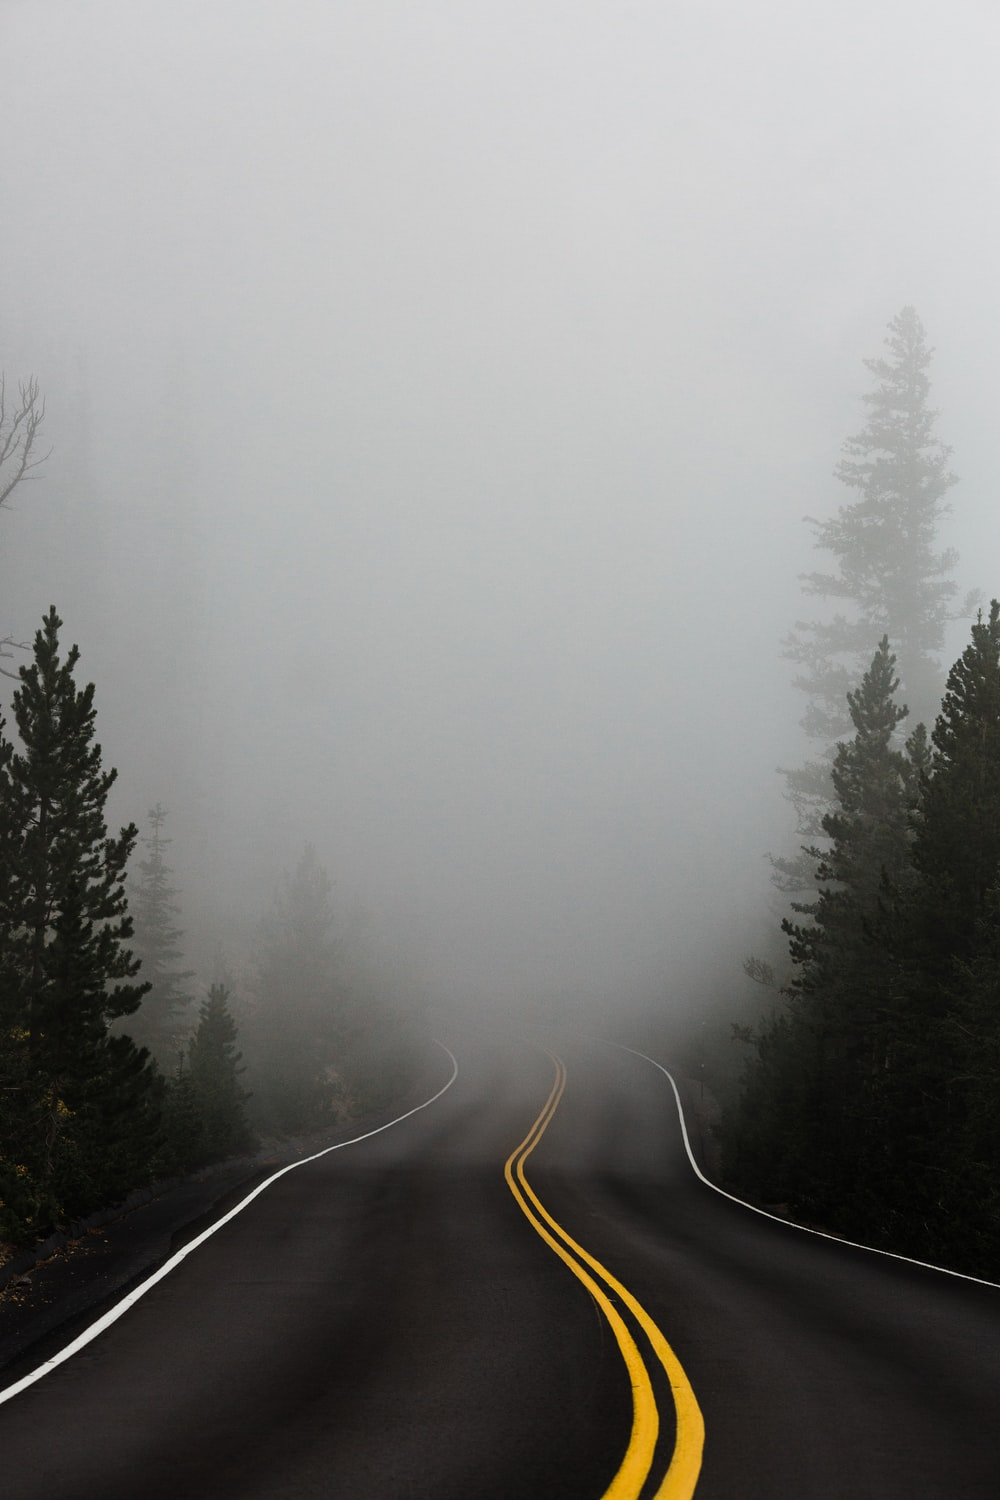 empty road surrounded with trees with fog